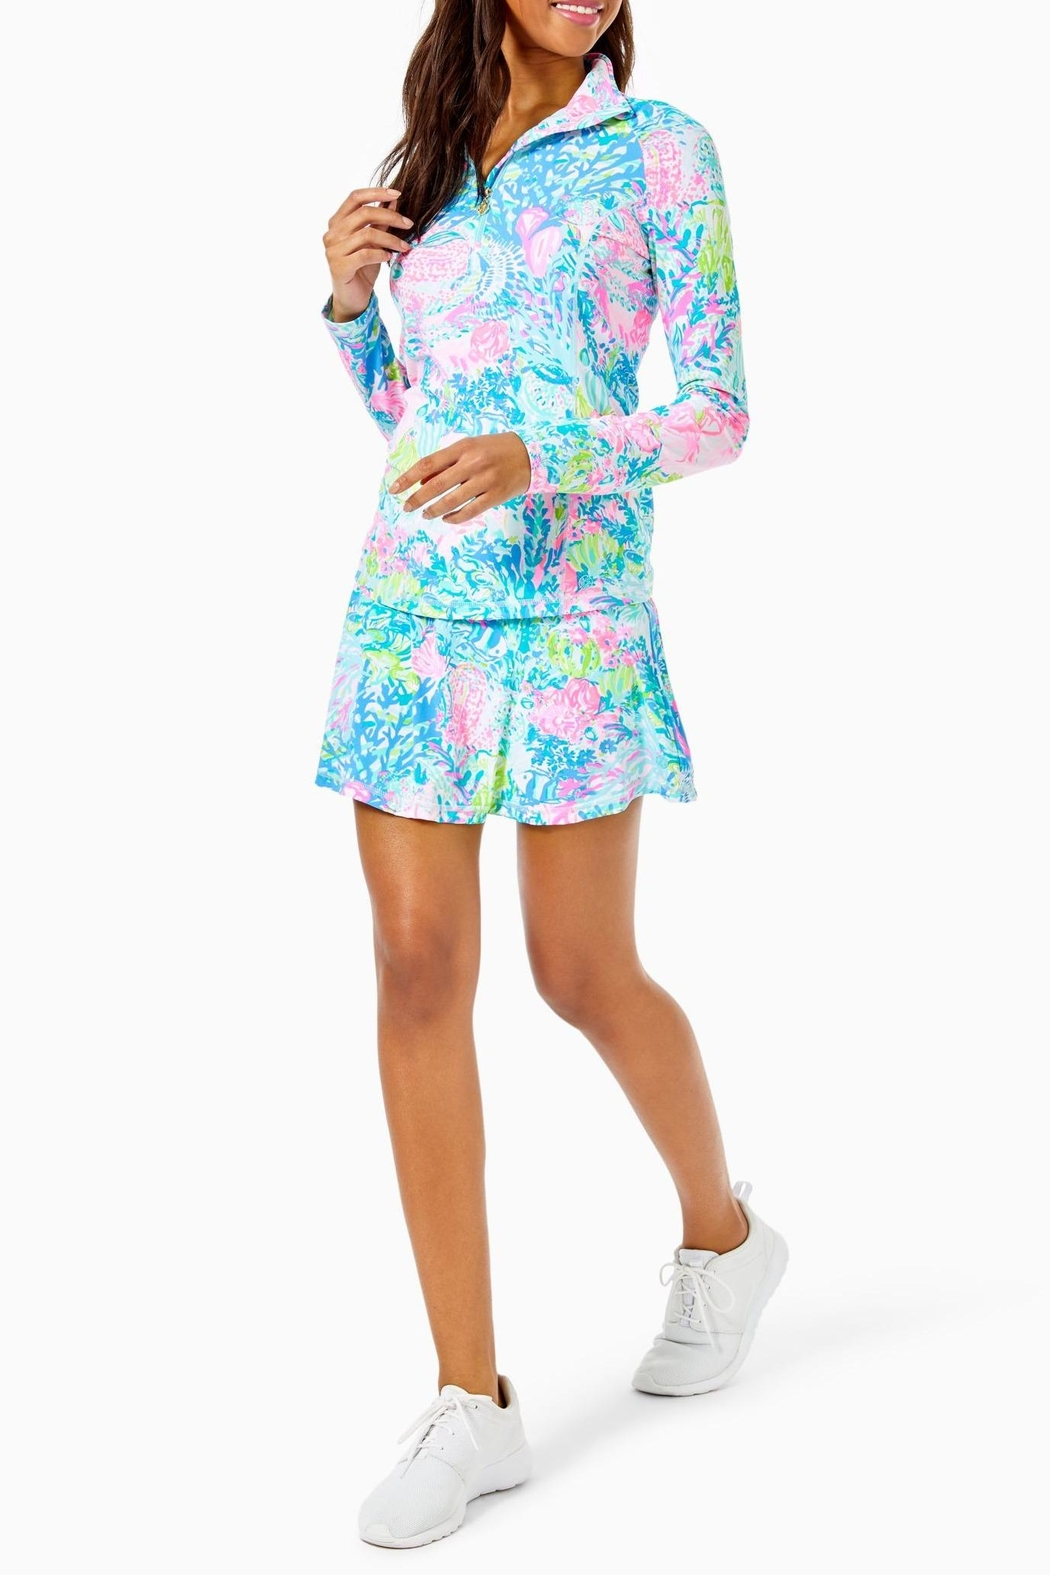 Lilly Pulitzer Luxletic Justine Pullover - Back Cropped Image